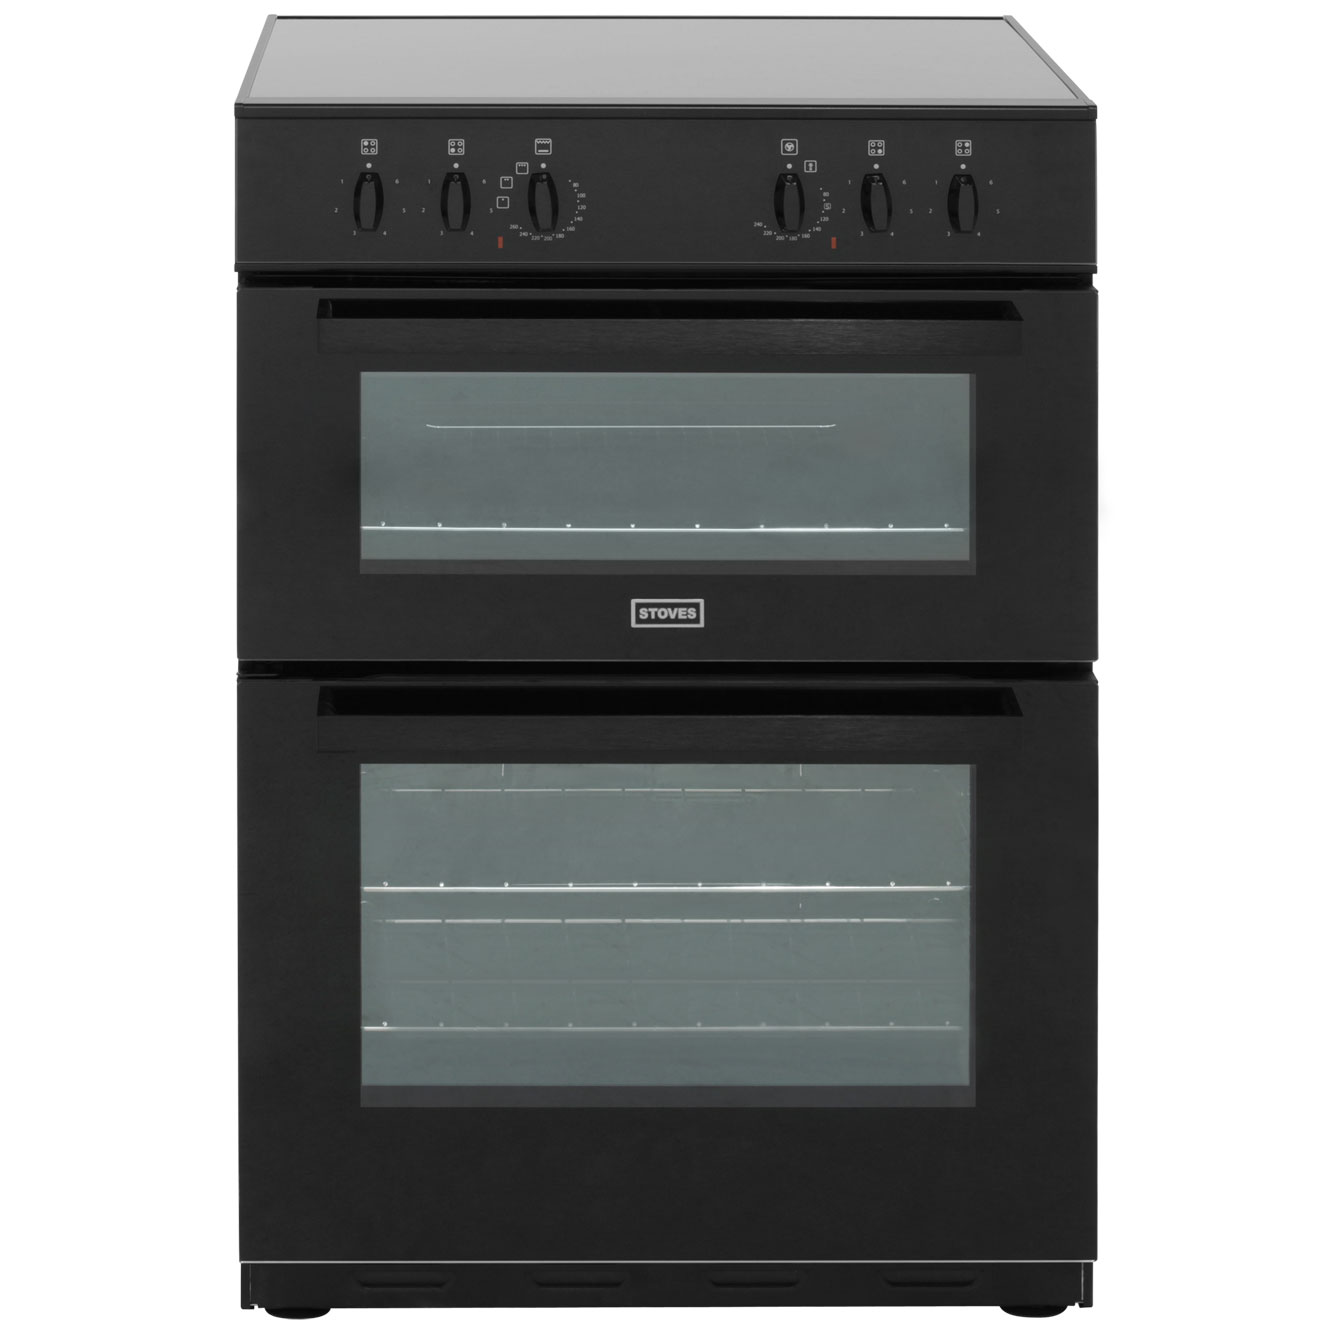 Electric Cooker Stove : Stoves SEC60DO Electric Cooker with Ceramic Hob - Black  ao.com